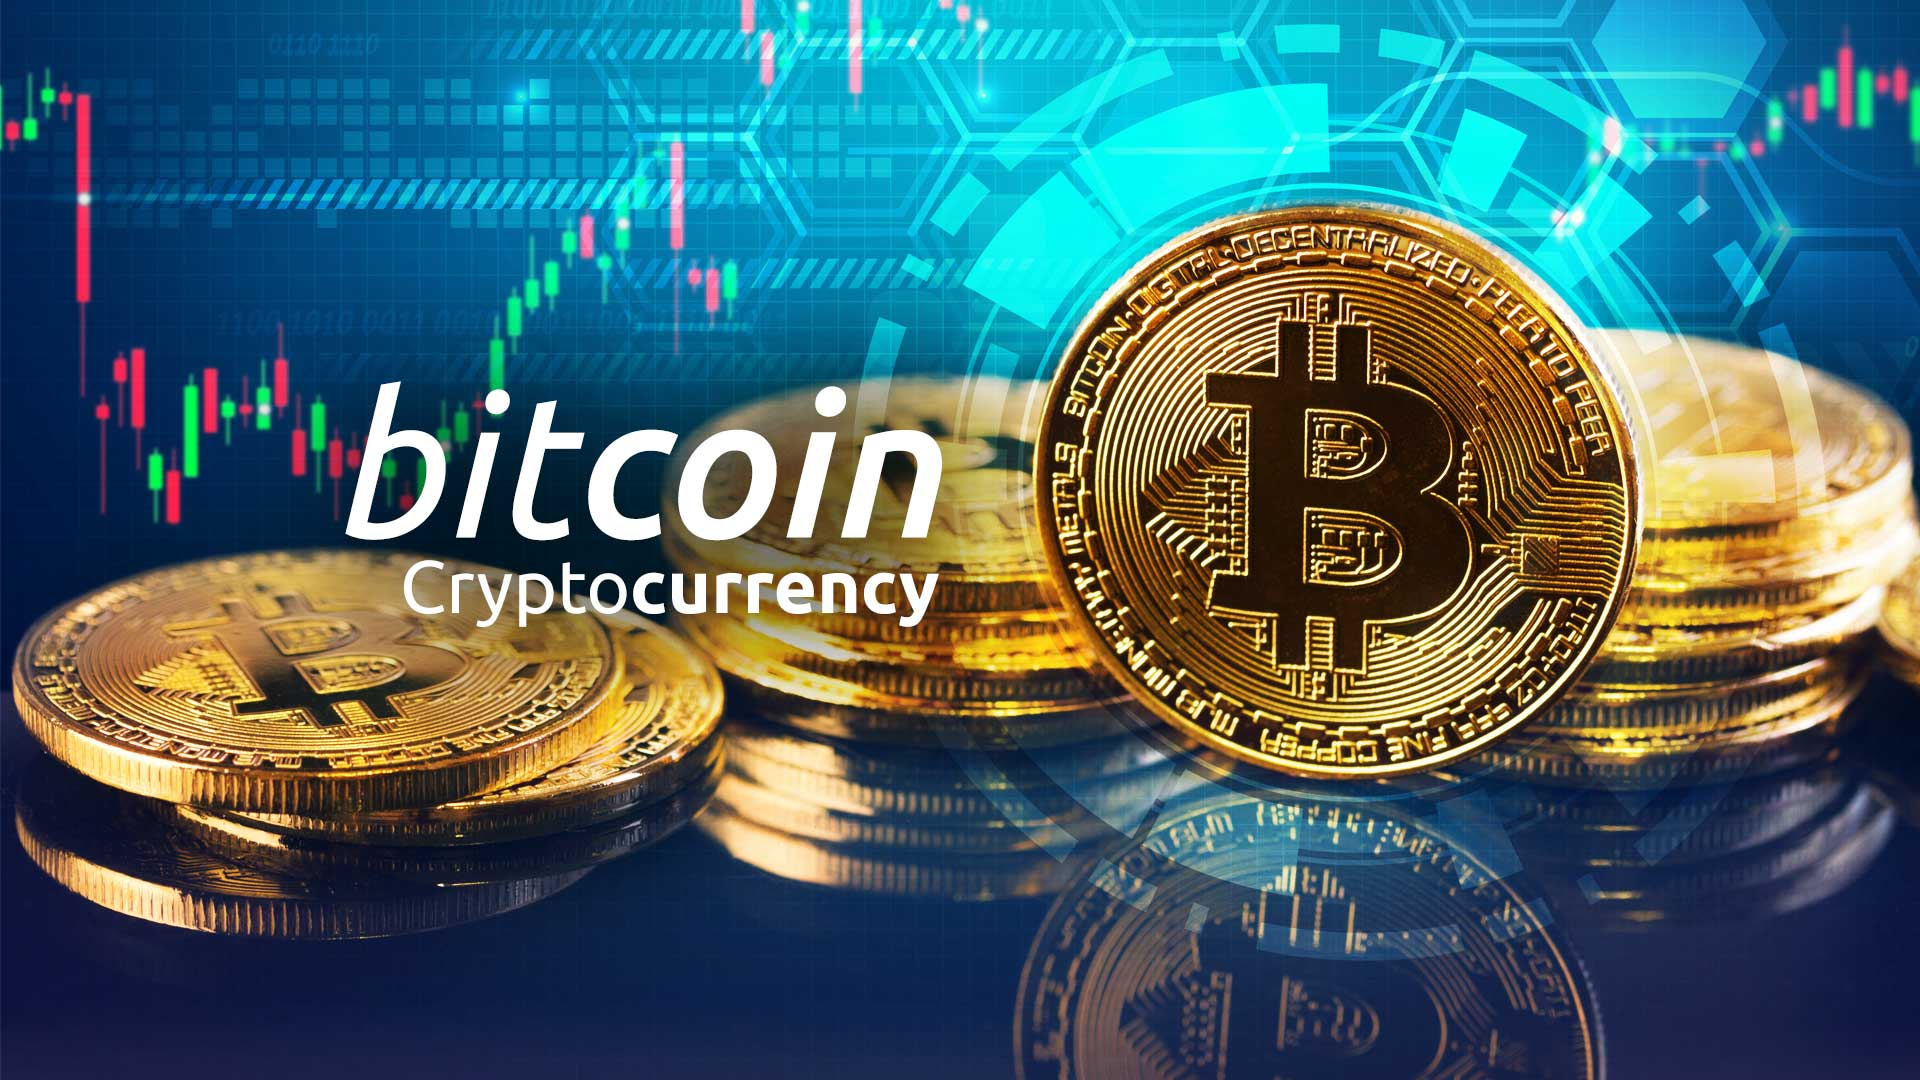 bitcoin cryptocurrency)